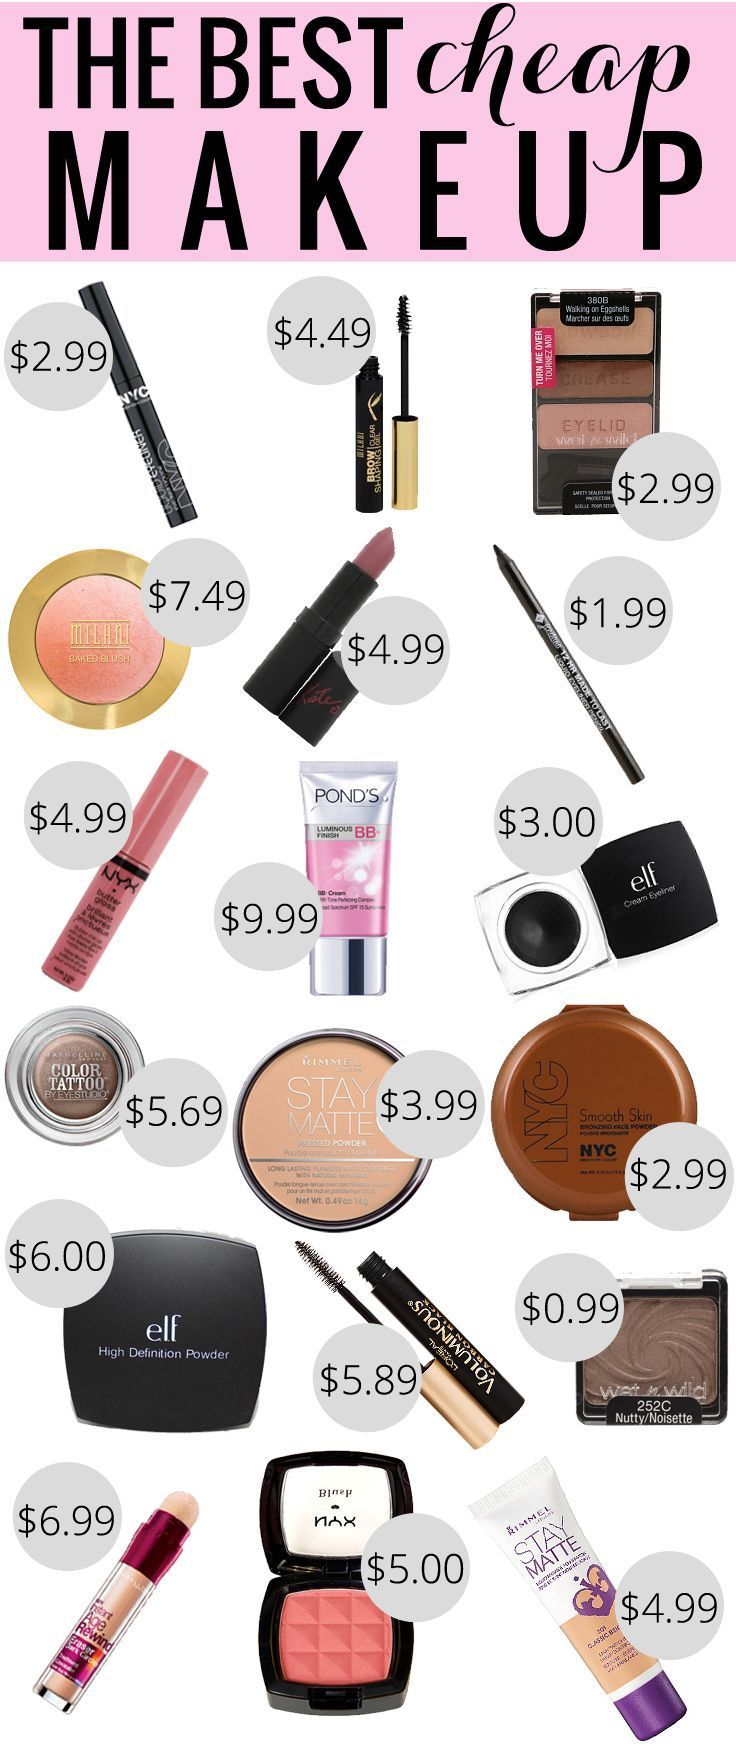 Cool Cars girly 2017: The Best Cheap Makeup, best drugstore makeup, makeup under $10...  Drugstore Beauty Check more at http://autoboard.pro/2017/2017/04/19/cars-girly-2017-the-best-cheap-makeup-best-drugstore-makeup-makeup-under-10-drugstore-beauty/